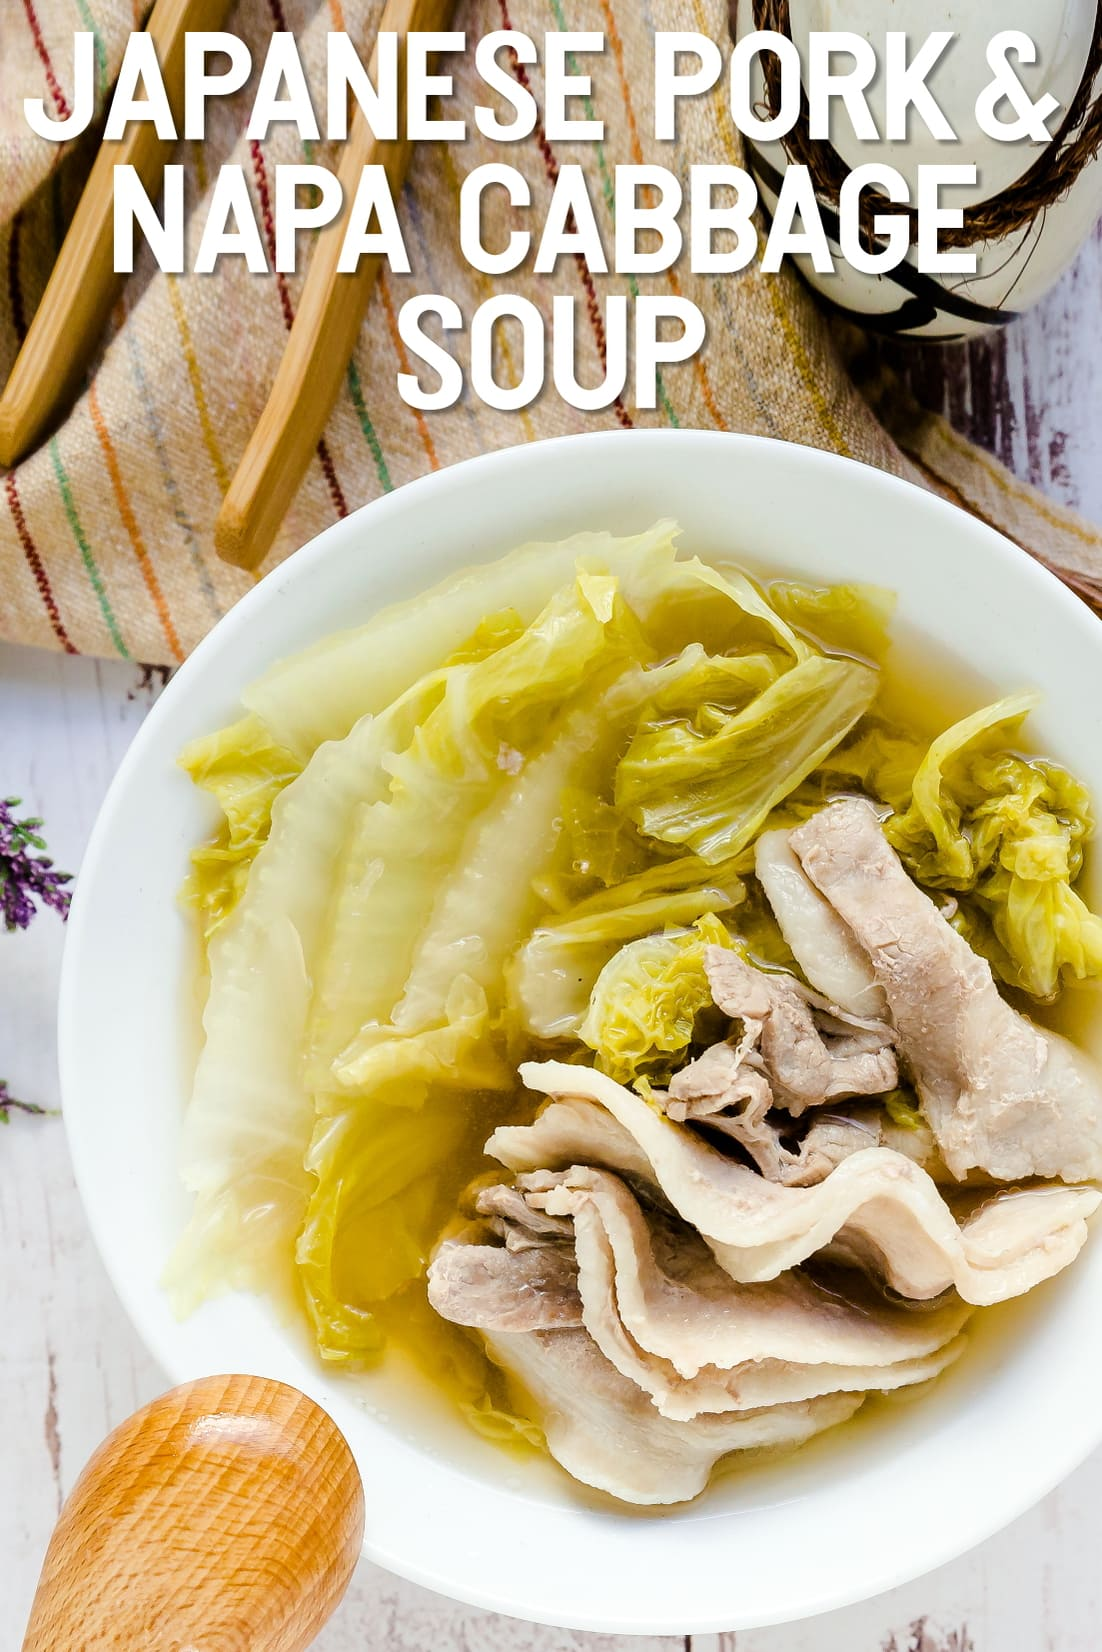 Japanese Pork and Napa Cabbage Soup served in a white bowl with wooden spoon